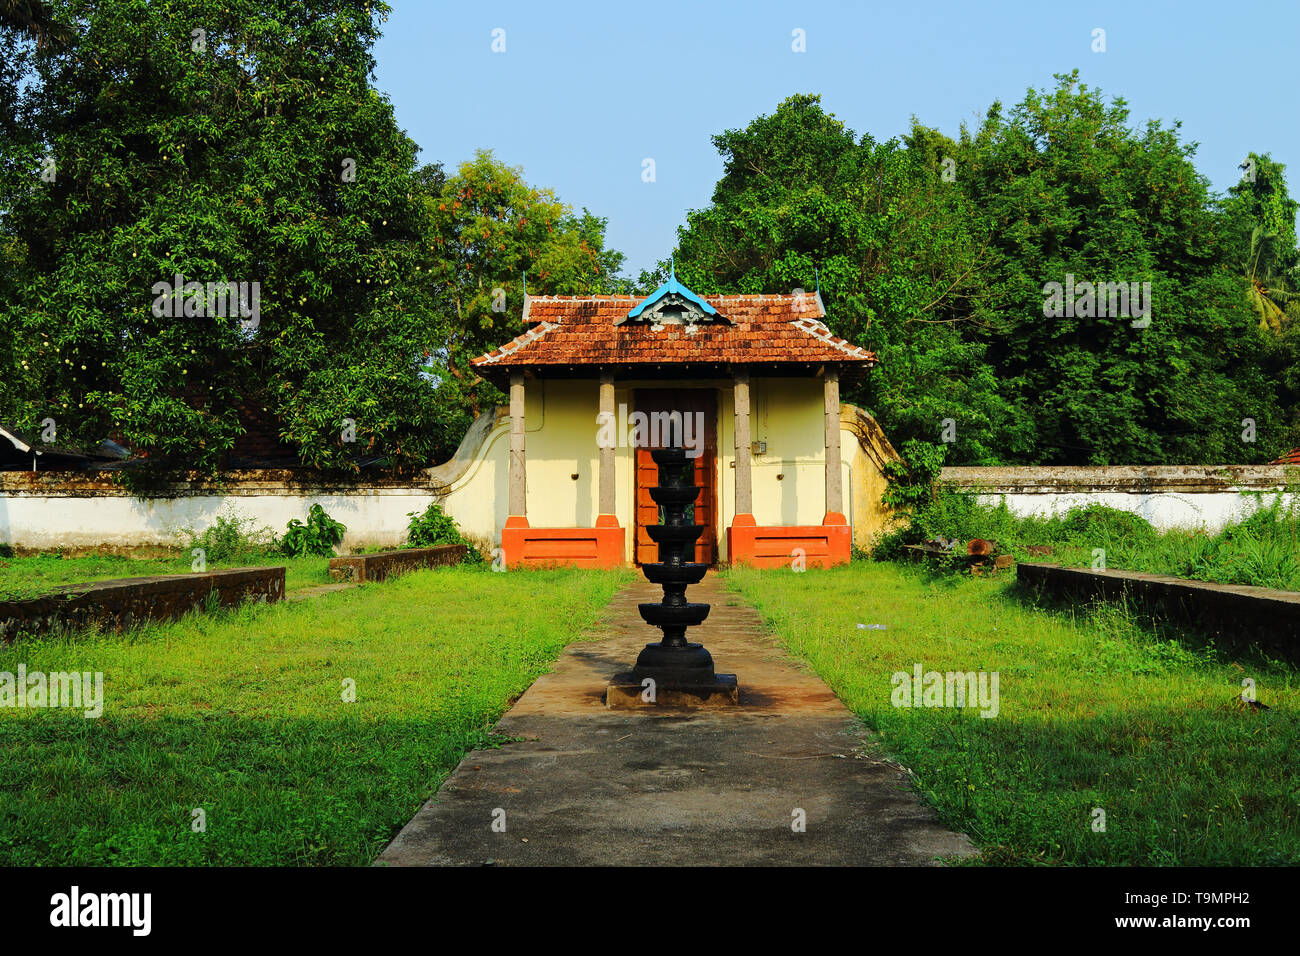 Thirumoozhikkulam Lakshmanaperumal Temple at Moozhiklulam near Angamaly, Ernakulam dist. Kerala. One of the fours major temples in 'Nalambala darsan' Stock Photo